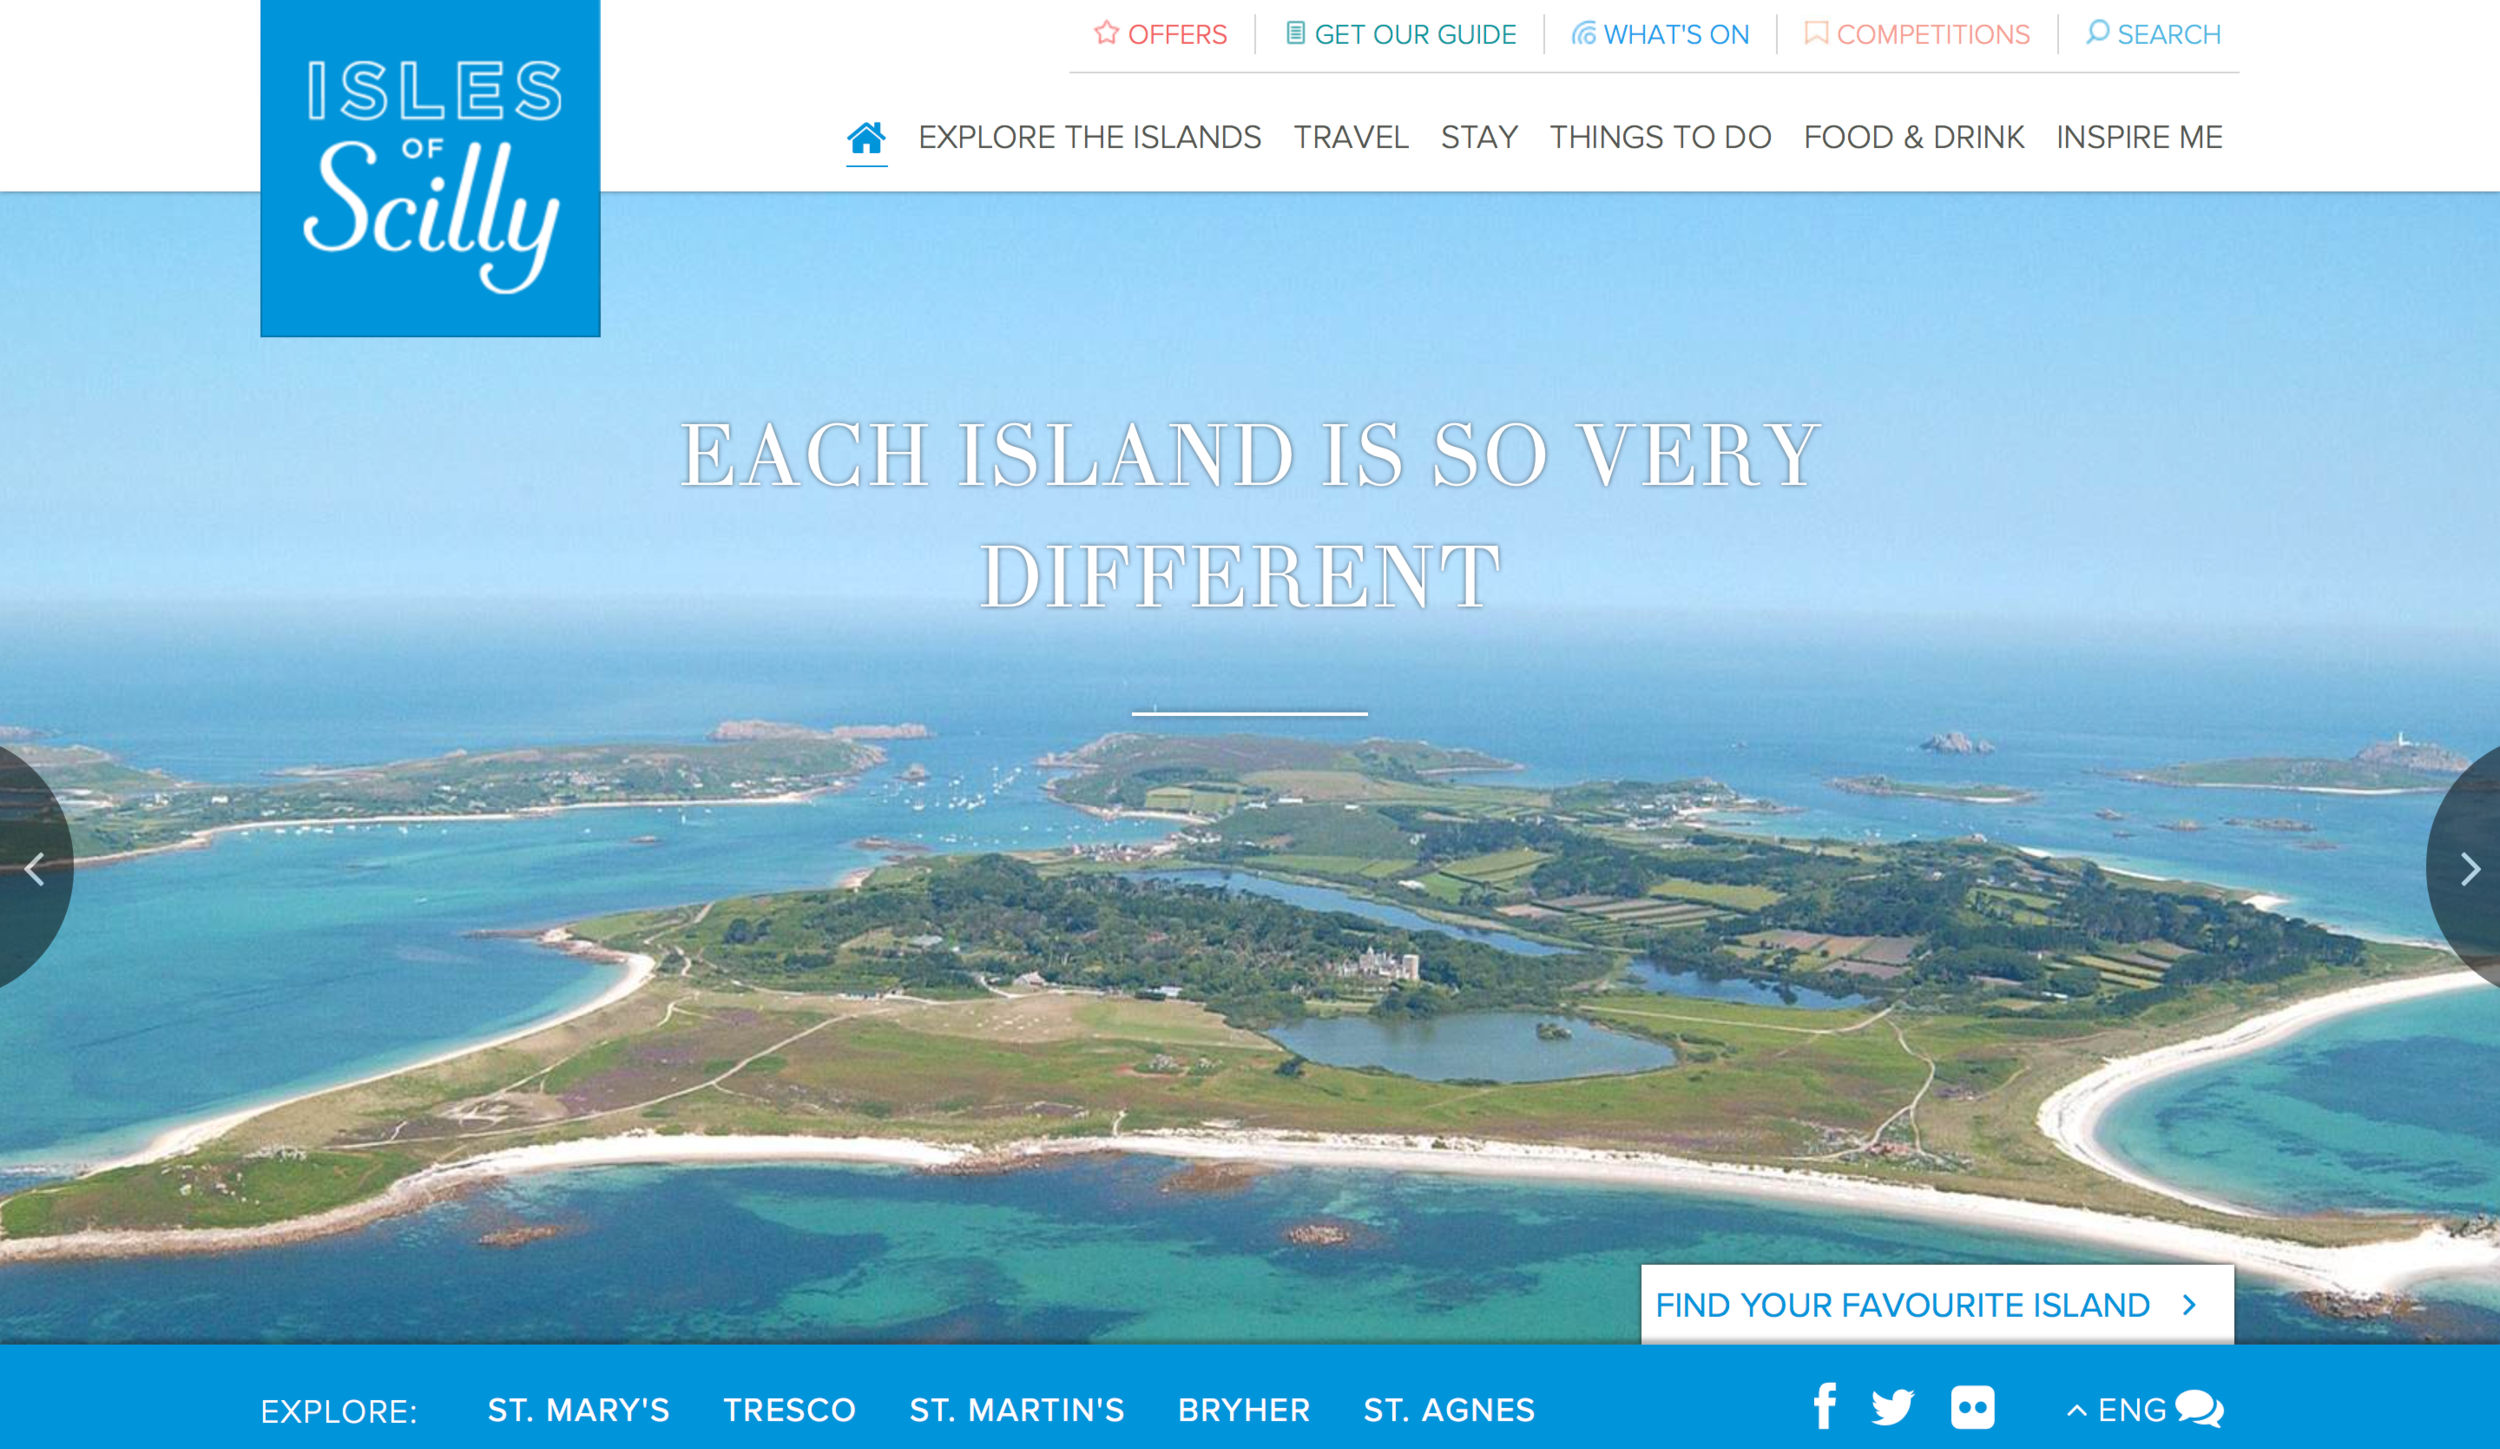 The homepage of the the current Visit Isles of Scilly Website. Image courtesy of Visit Isles of Scilly/Islands' Partnership.